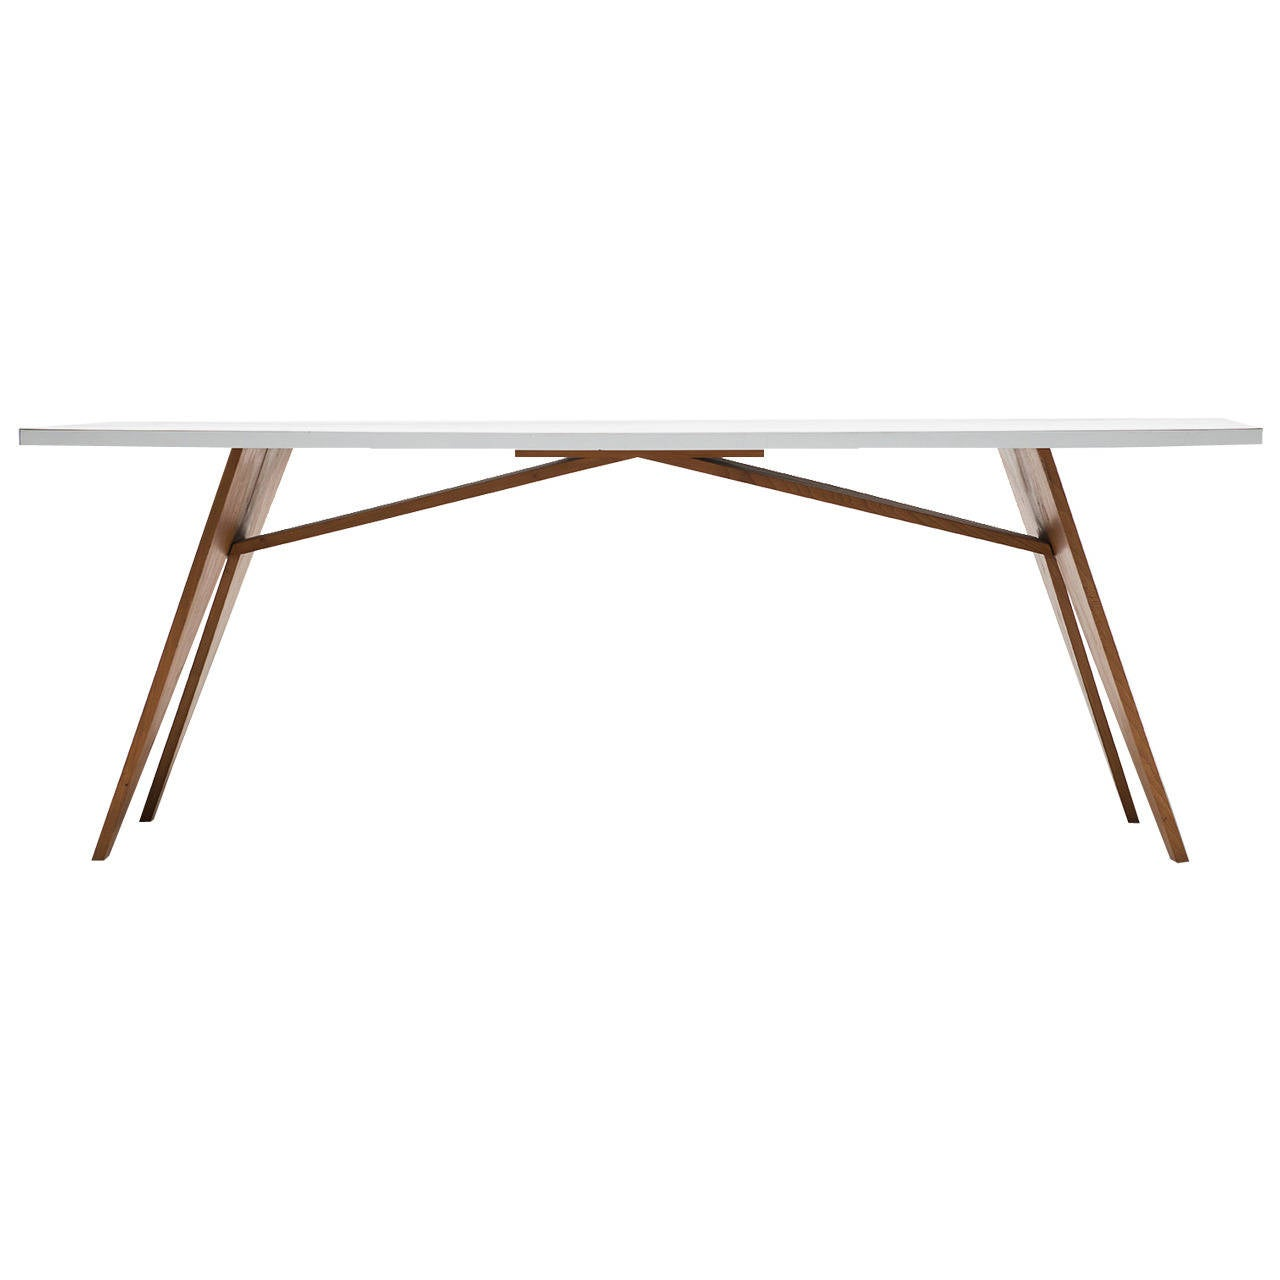 Zigzag Table, Top Covered With White Formica By Gerrit Rietveld 1